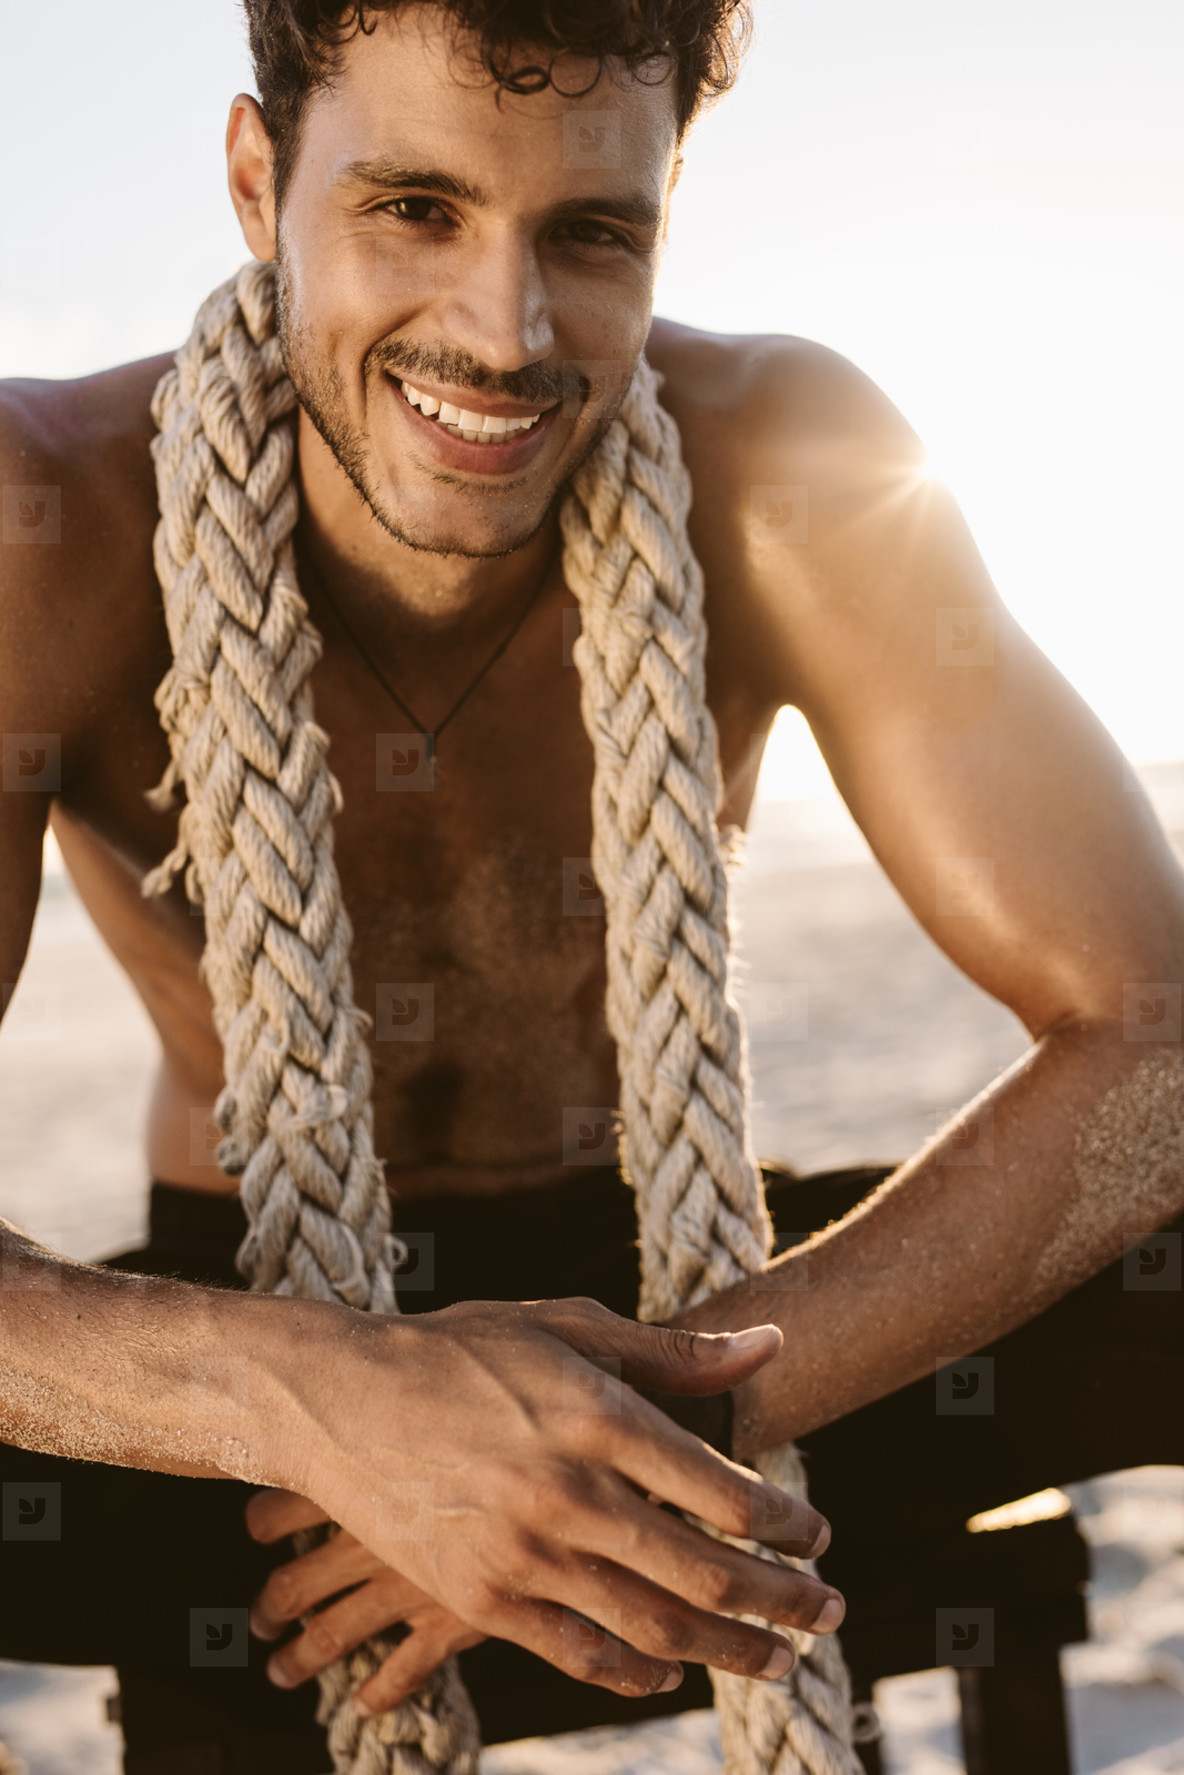 Man relaxing at the beach after workout